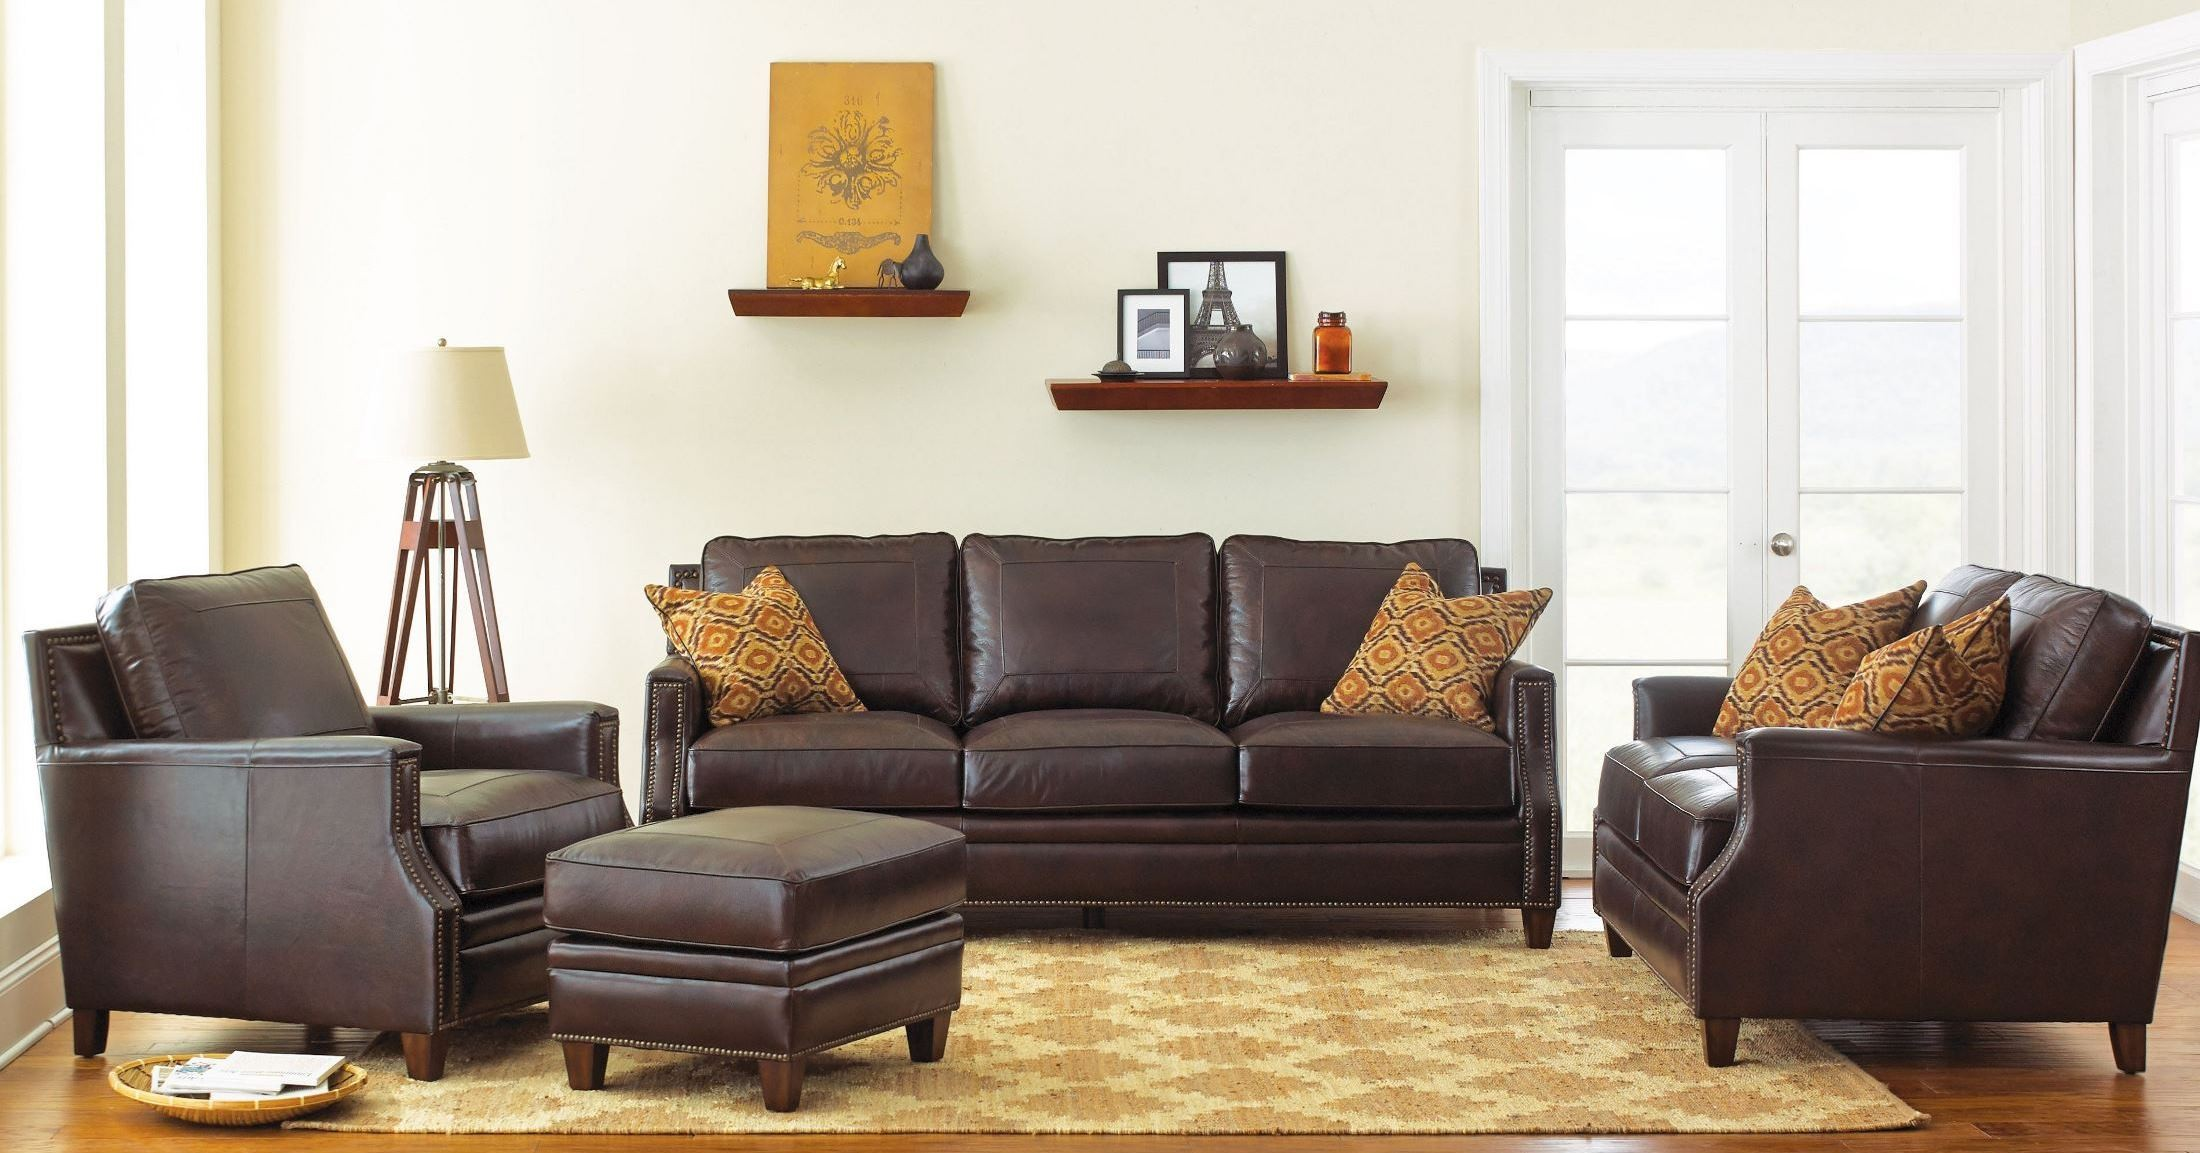 leather living room sets caldwell leather living room set from steve silver cw900s 16655 | cw900s cw900l cw900c cw900t 1